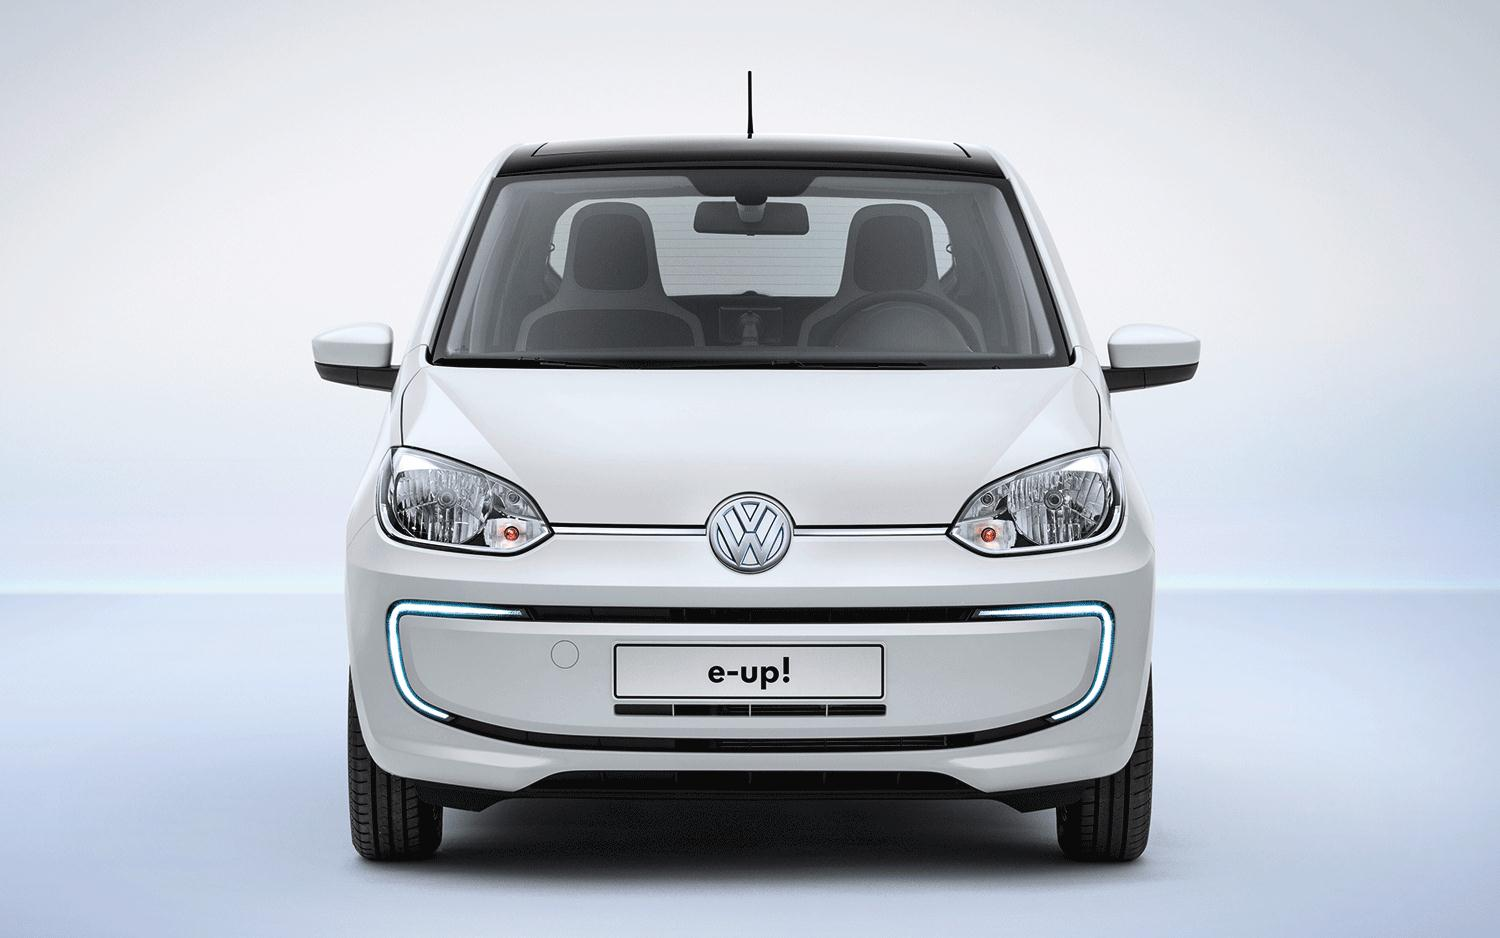 2014 Volkswagen e-Up Front End Photo